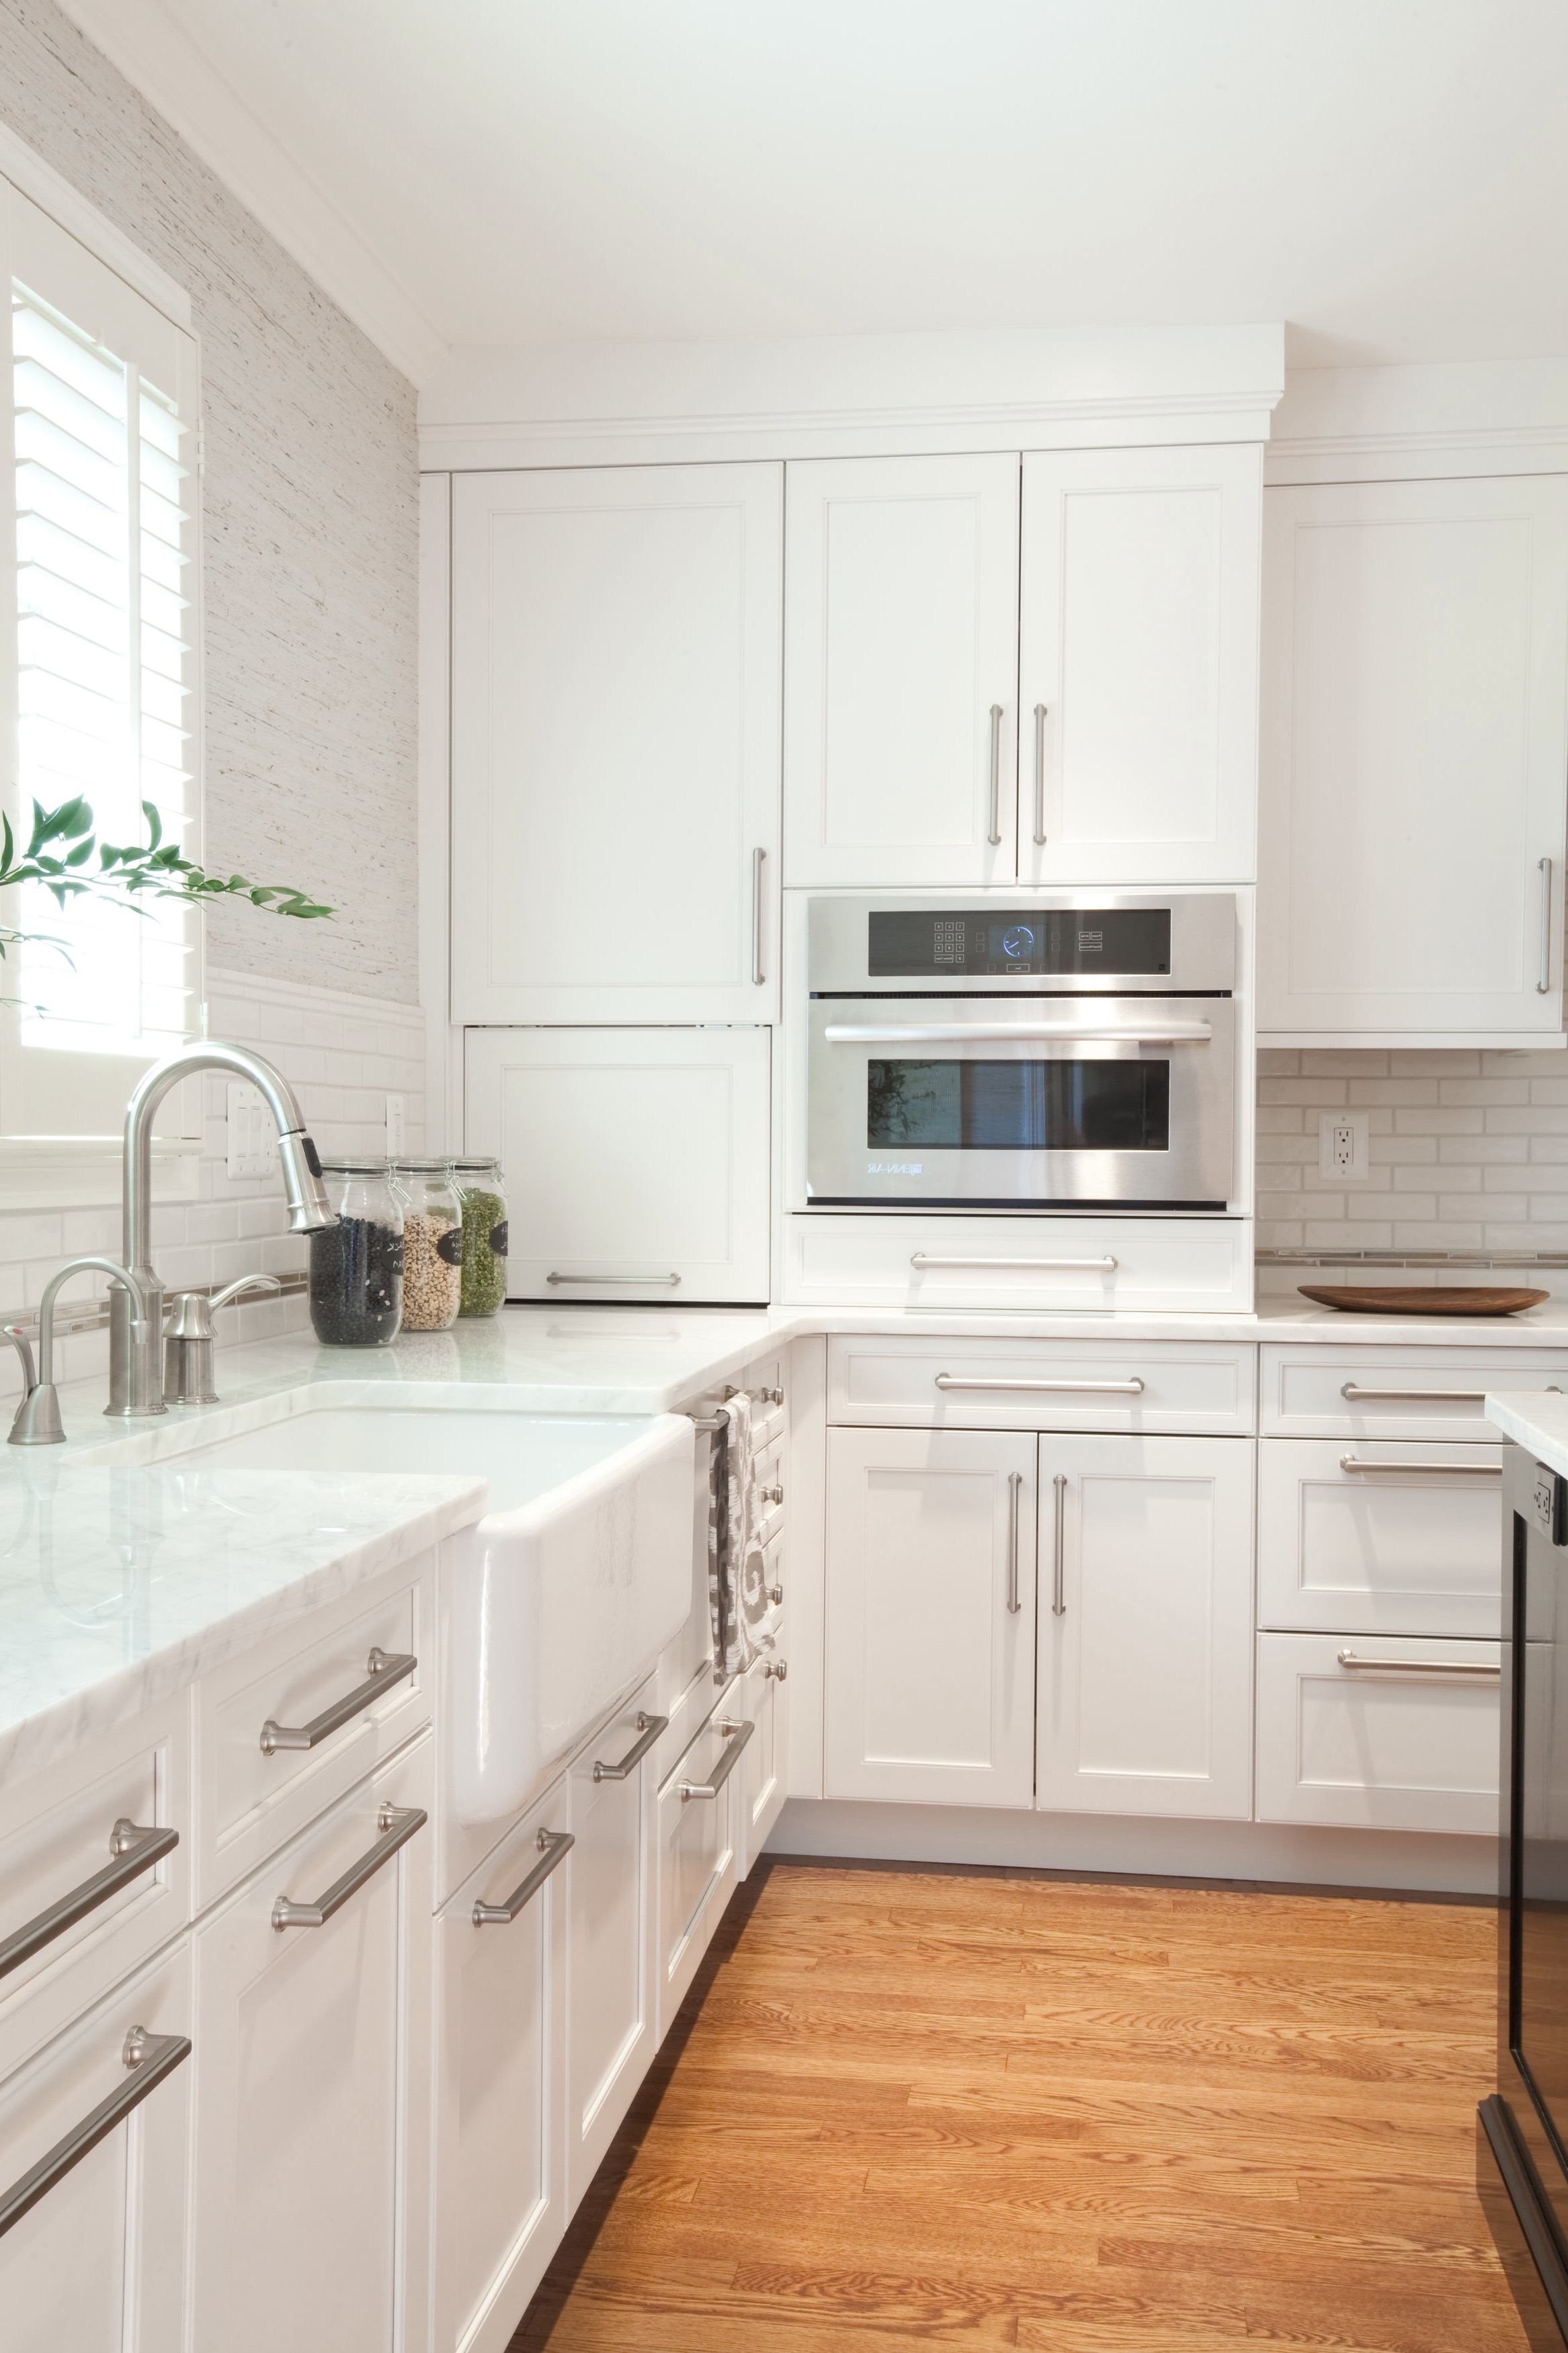 Dreamy White Kitchen Cabinets Paint (Image 5 of 18)